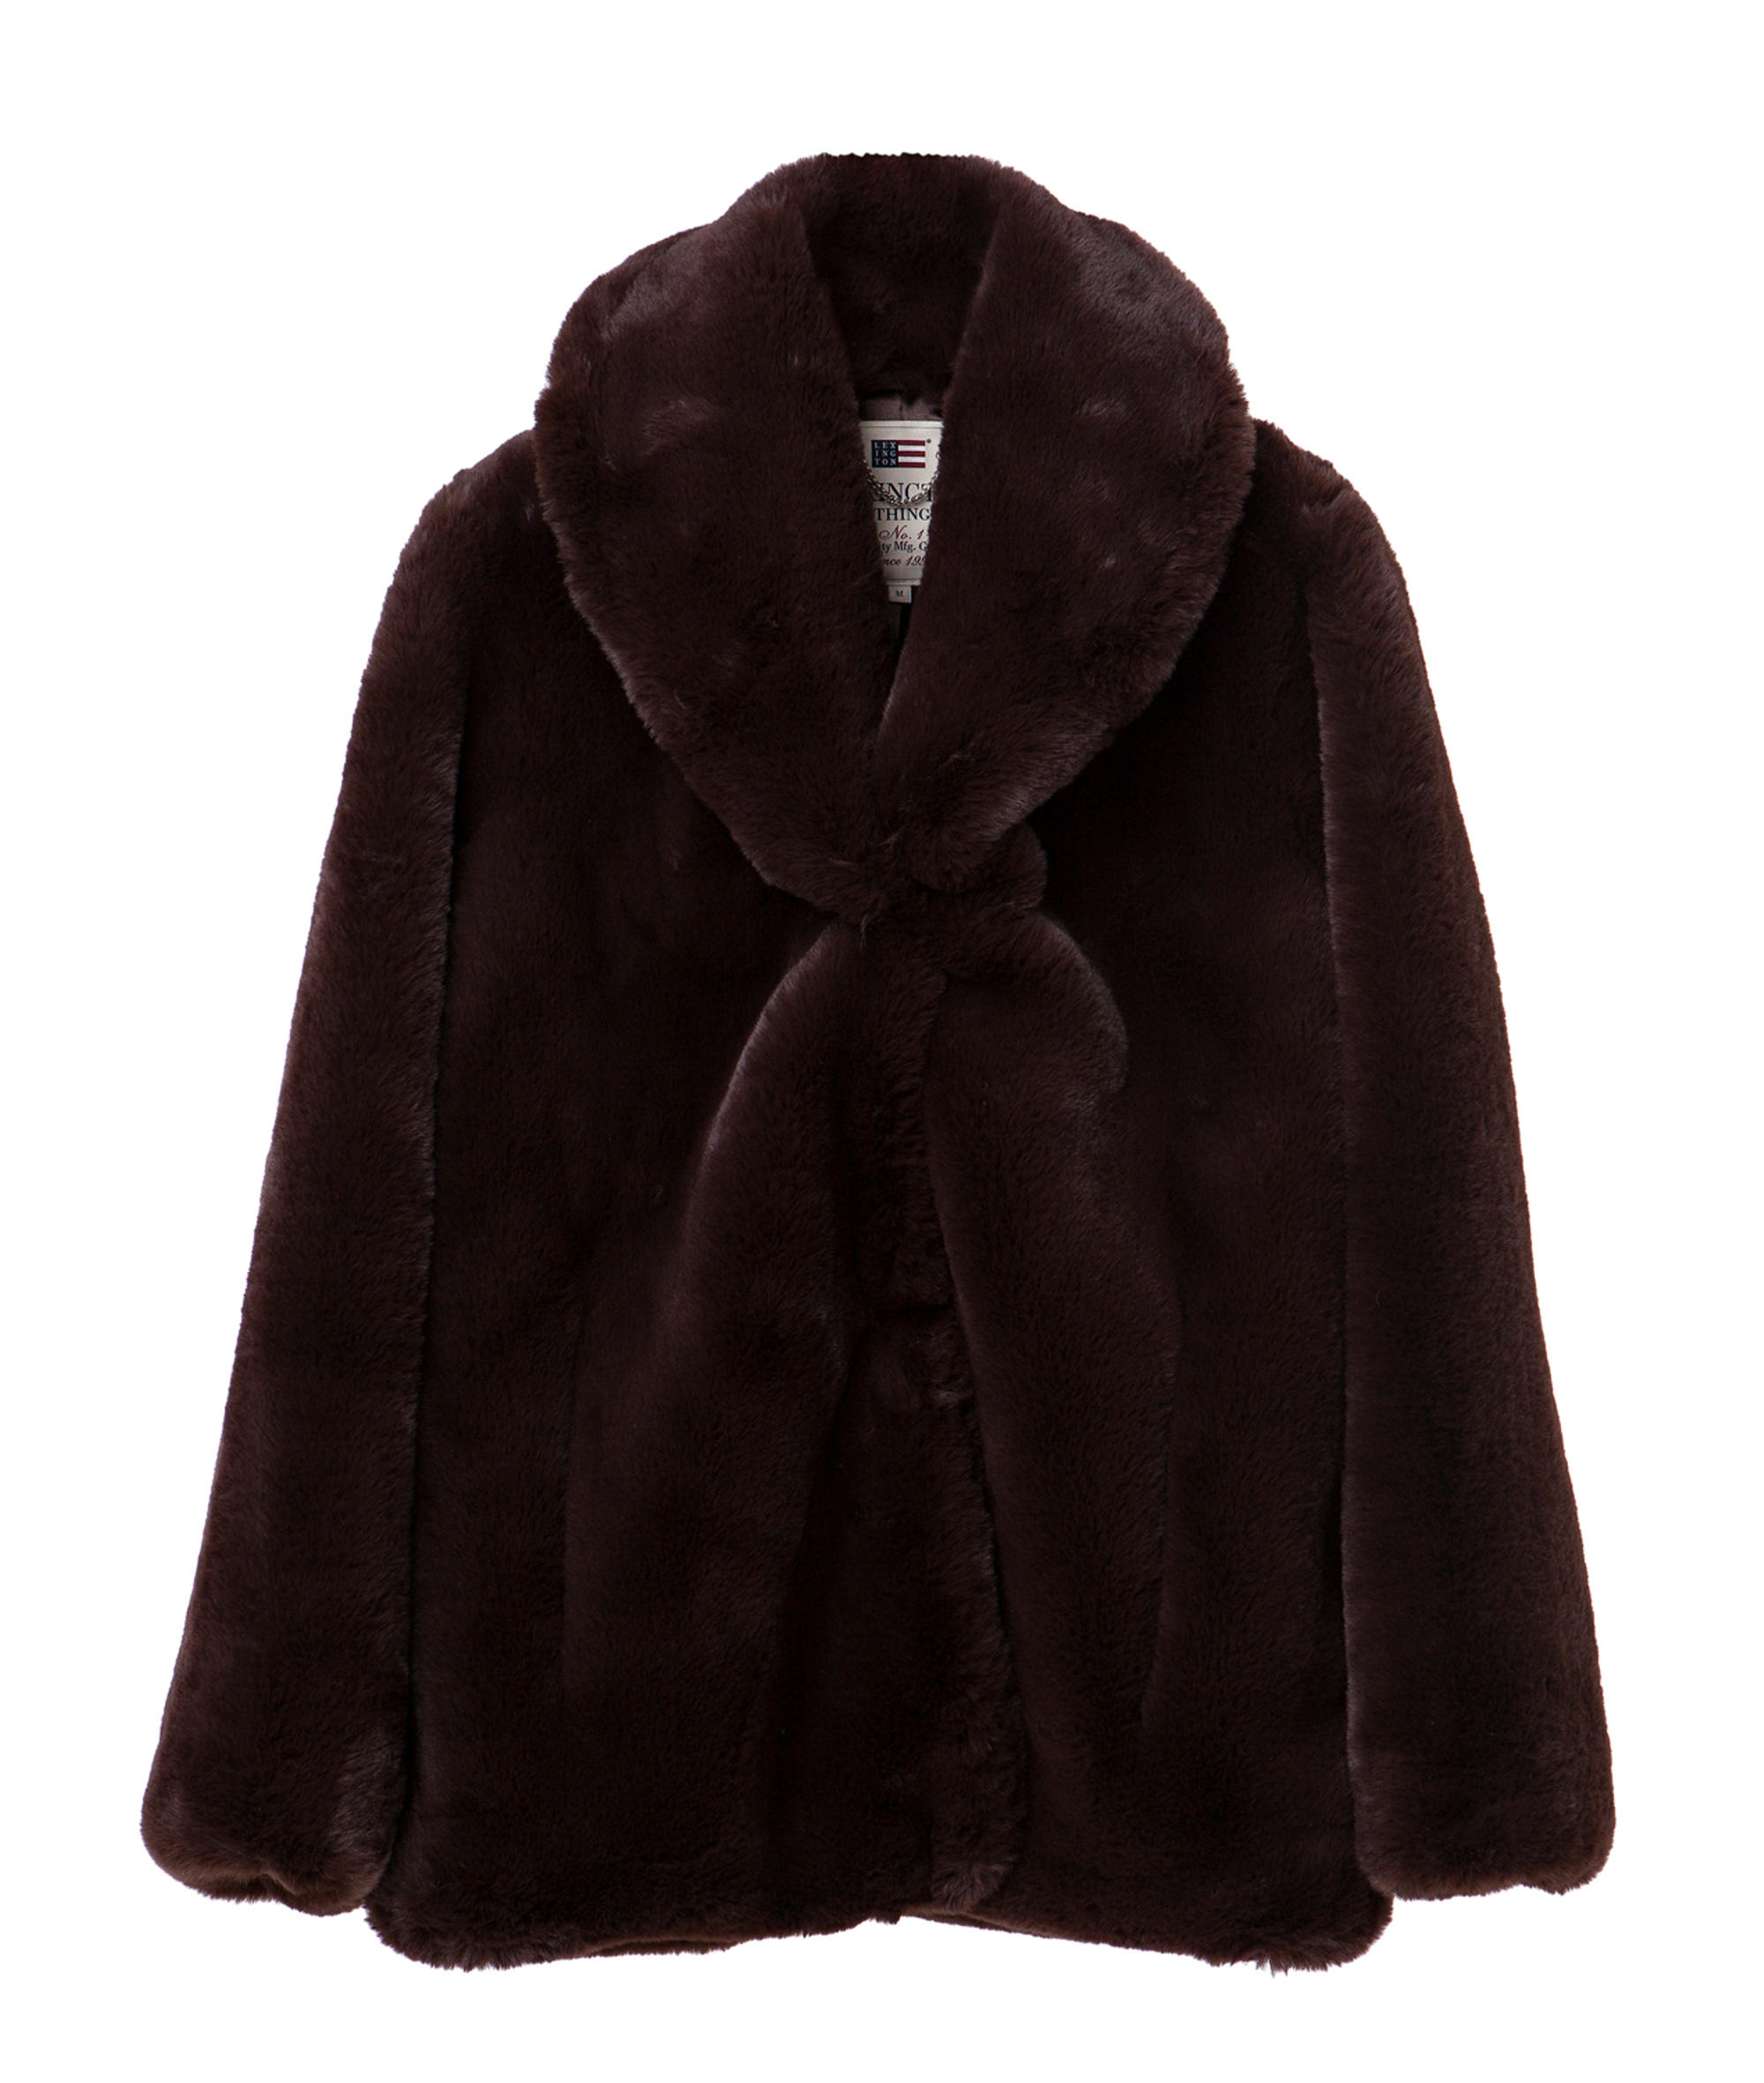 Faux Fur Jacket, Coffee Bean Brown